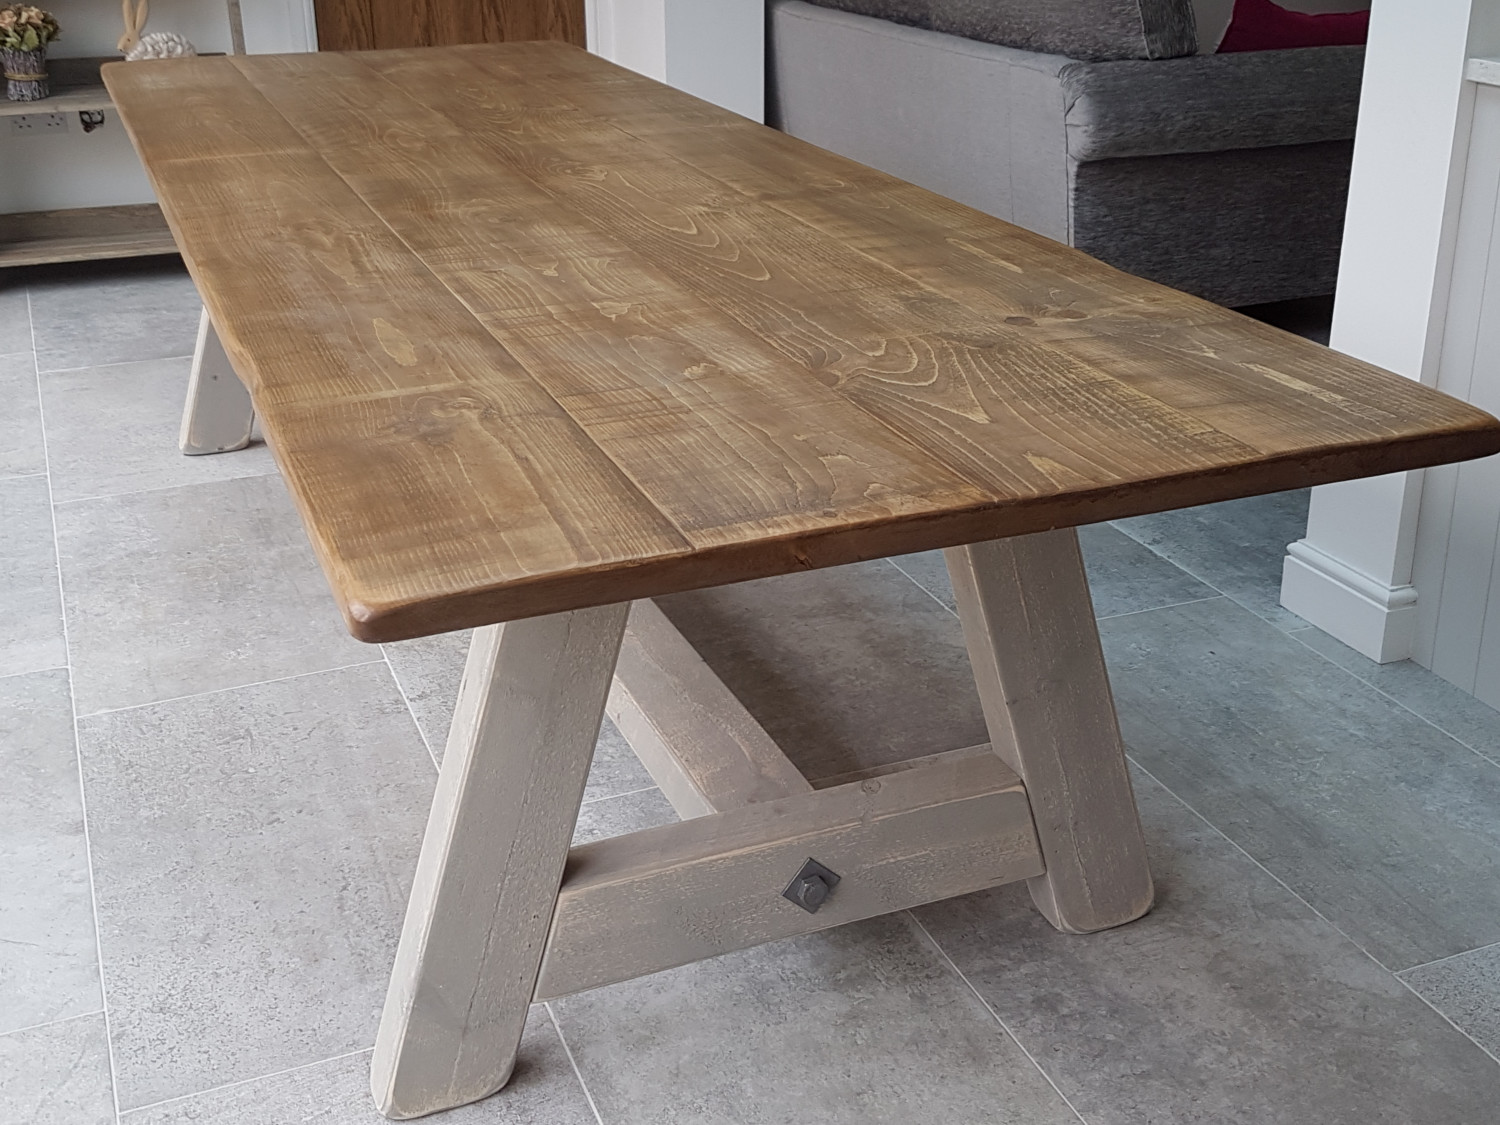 Our Popular A-frame Table with a 'Burbeck Stone' Painted Base